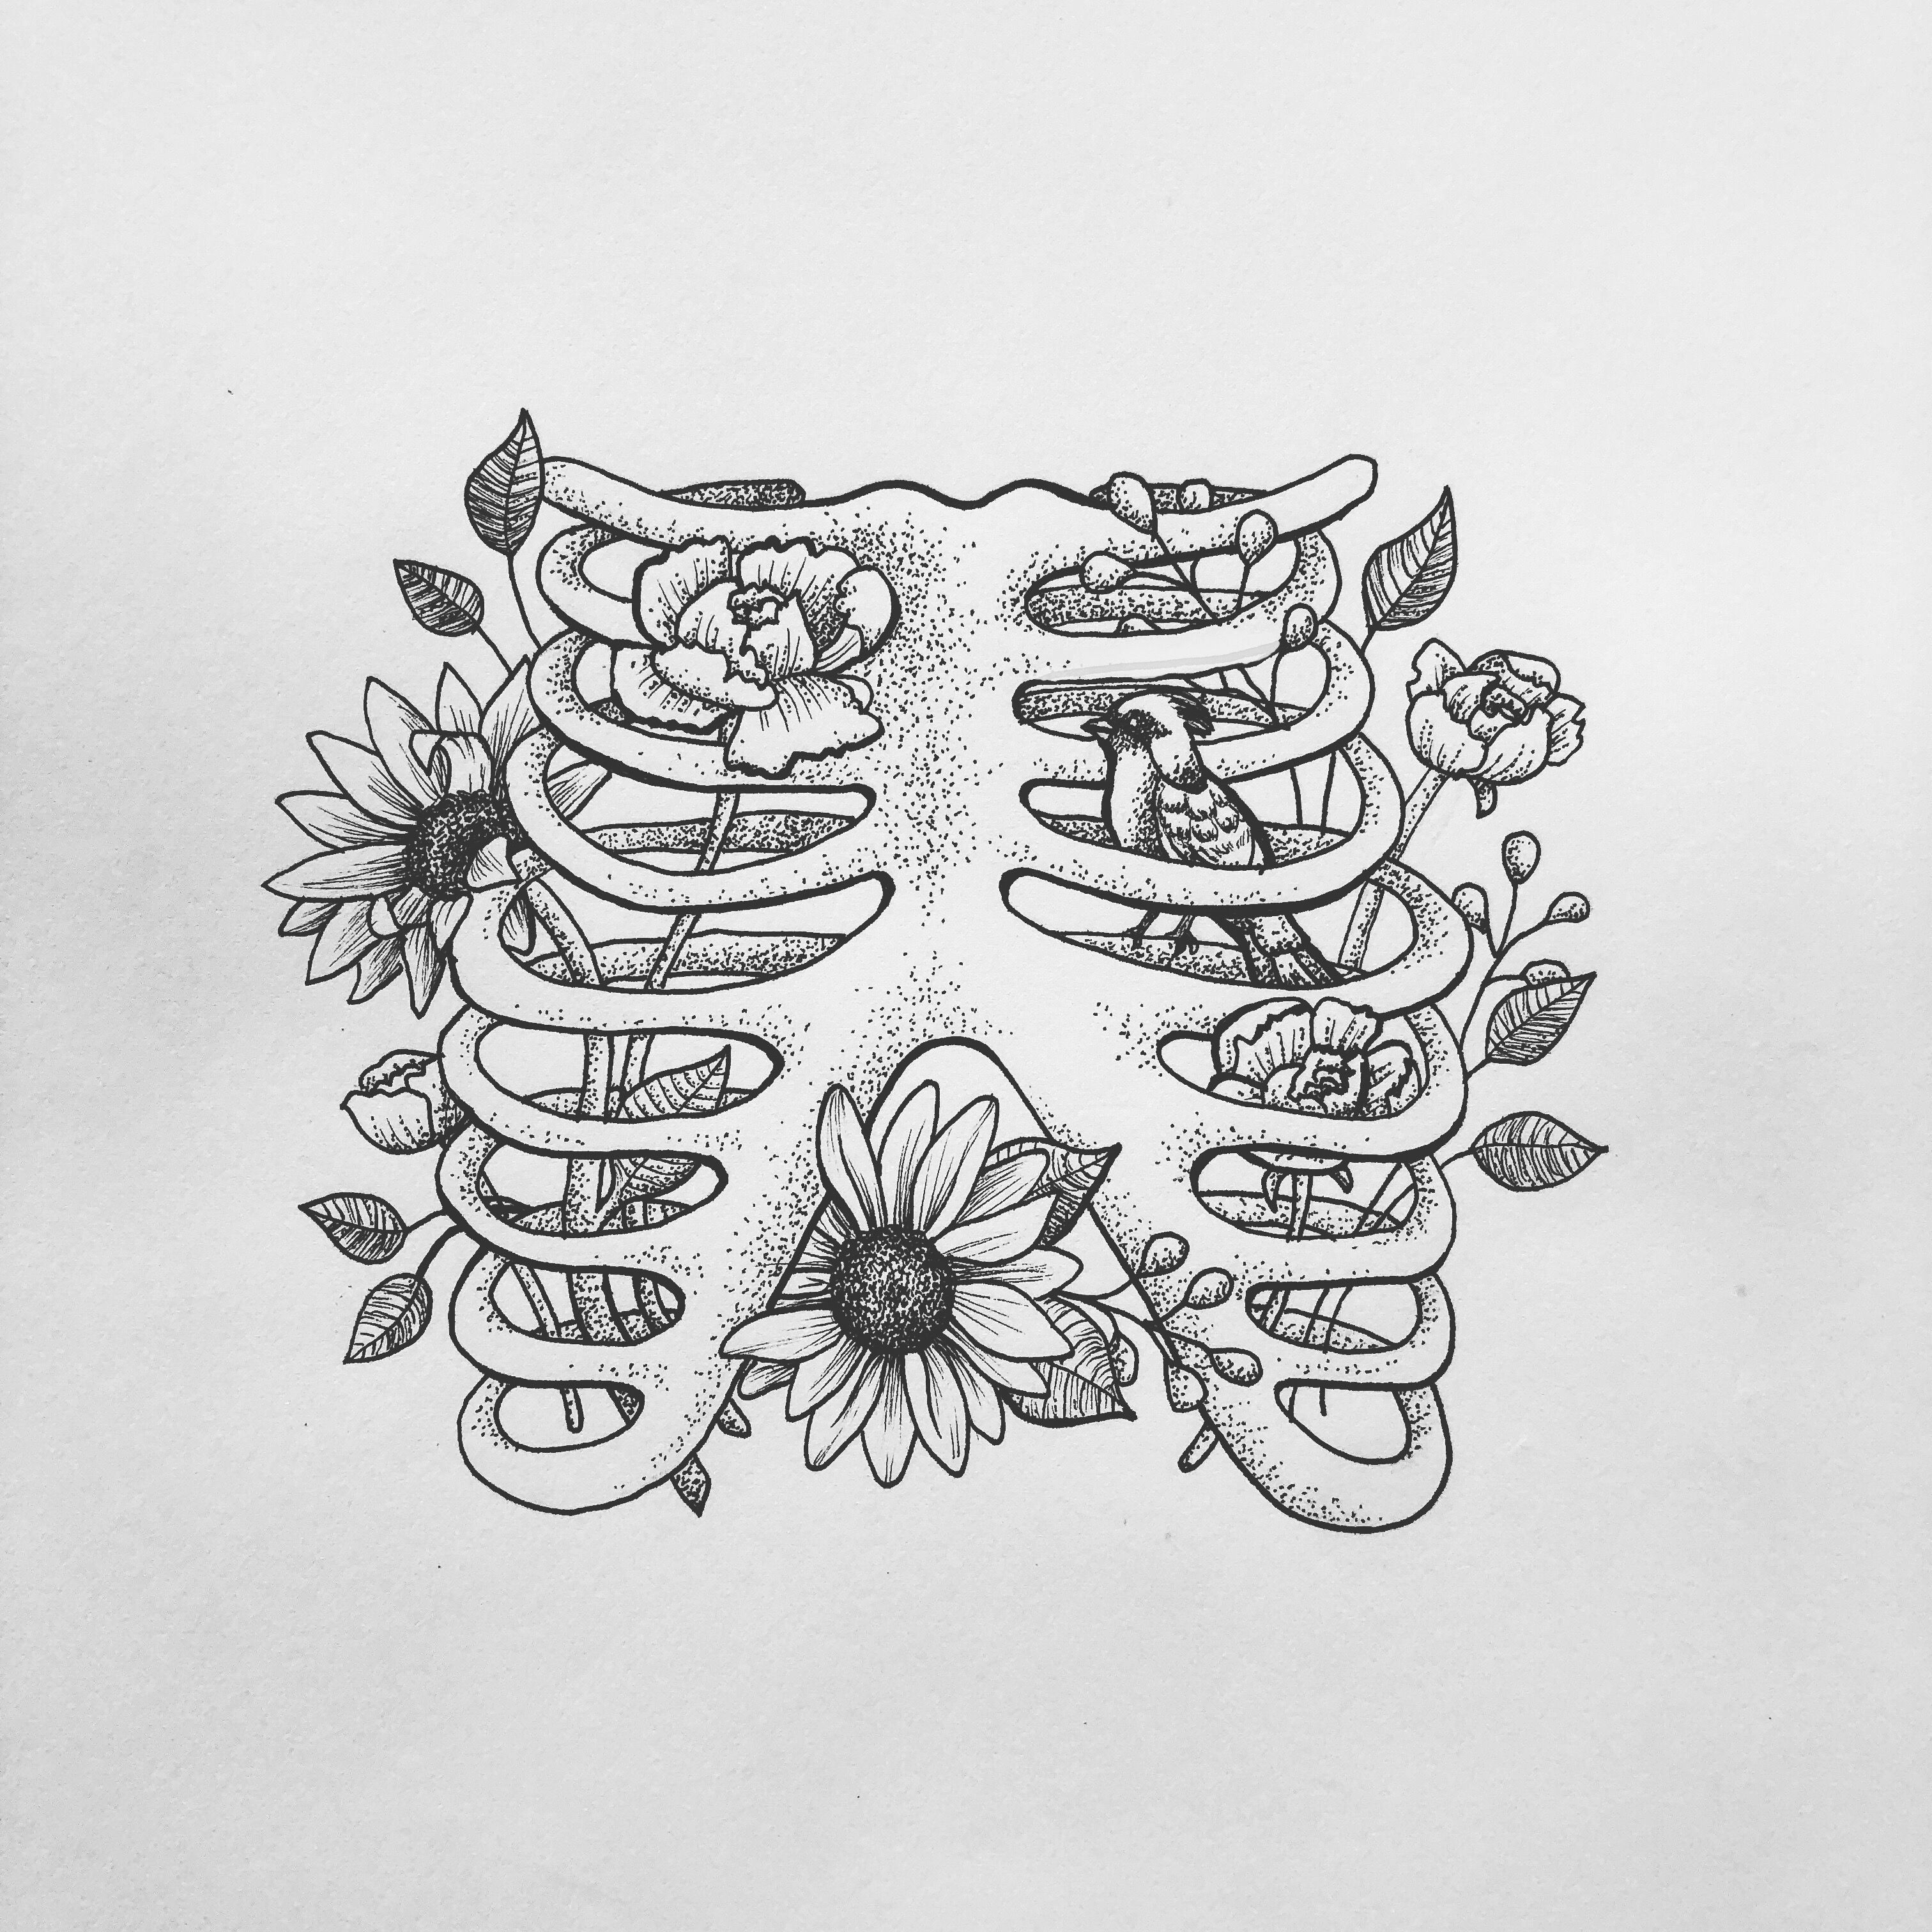 Bird in your rib cage, anatomical tattoo design